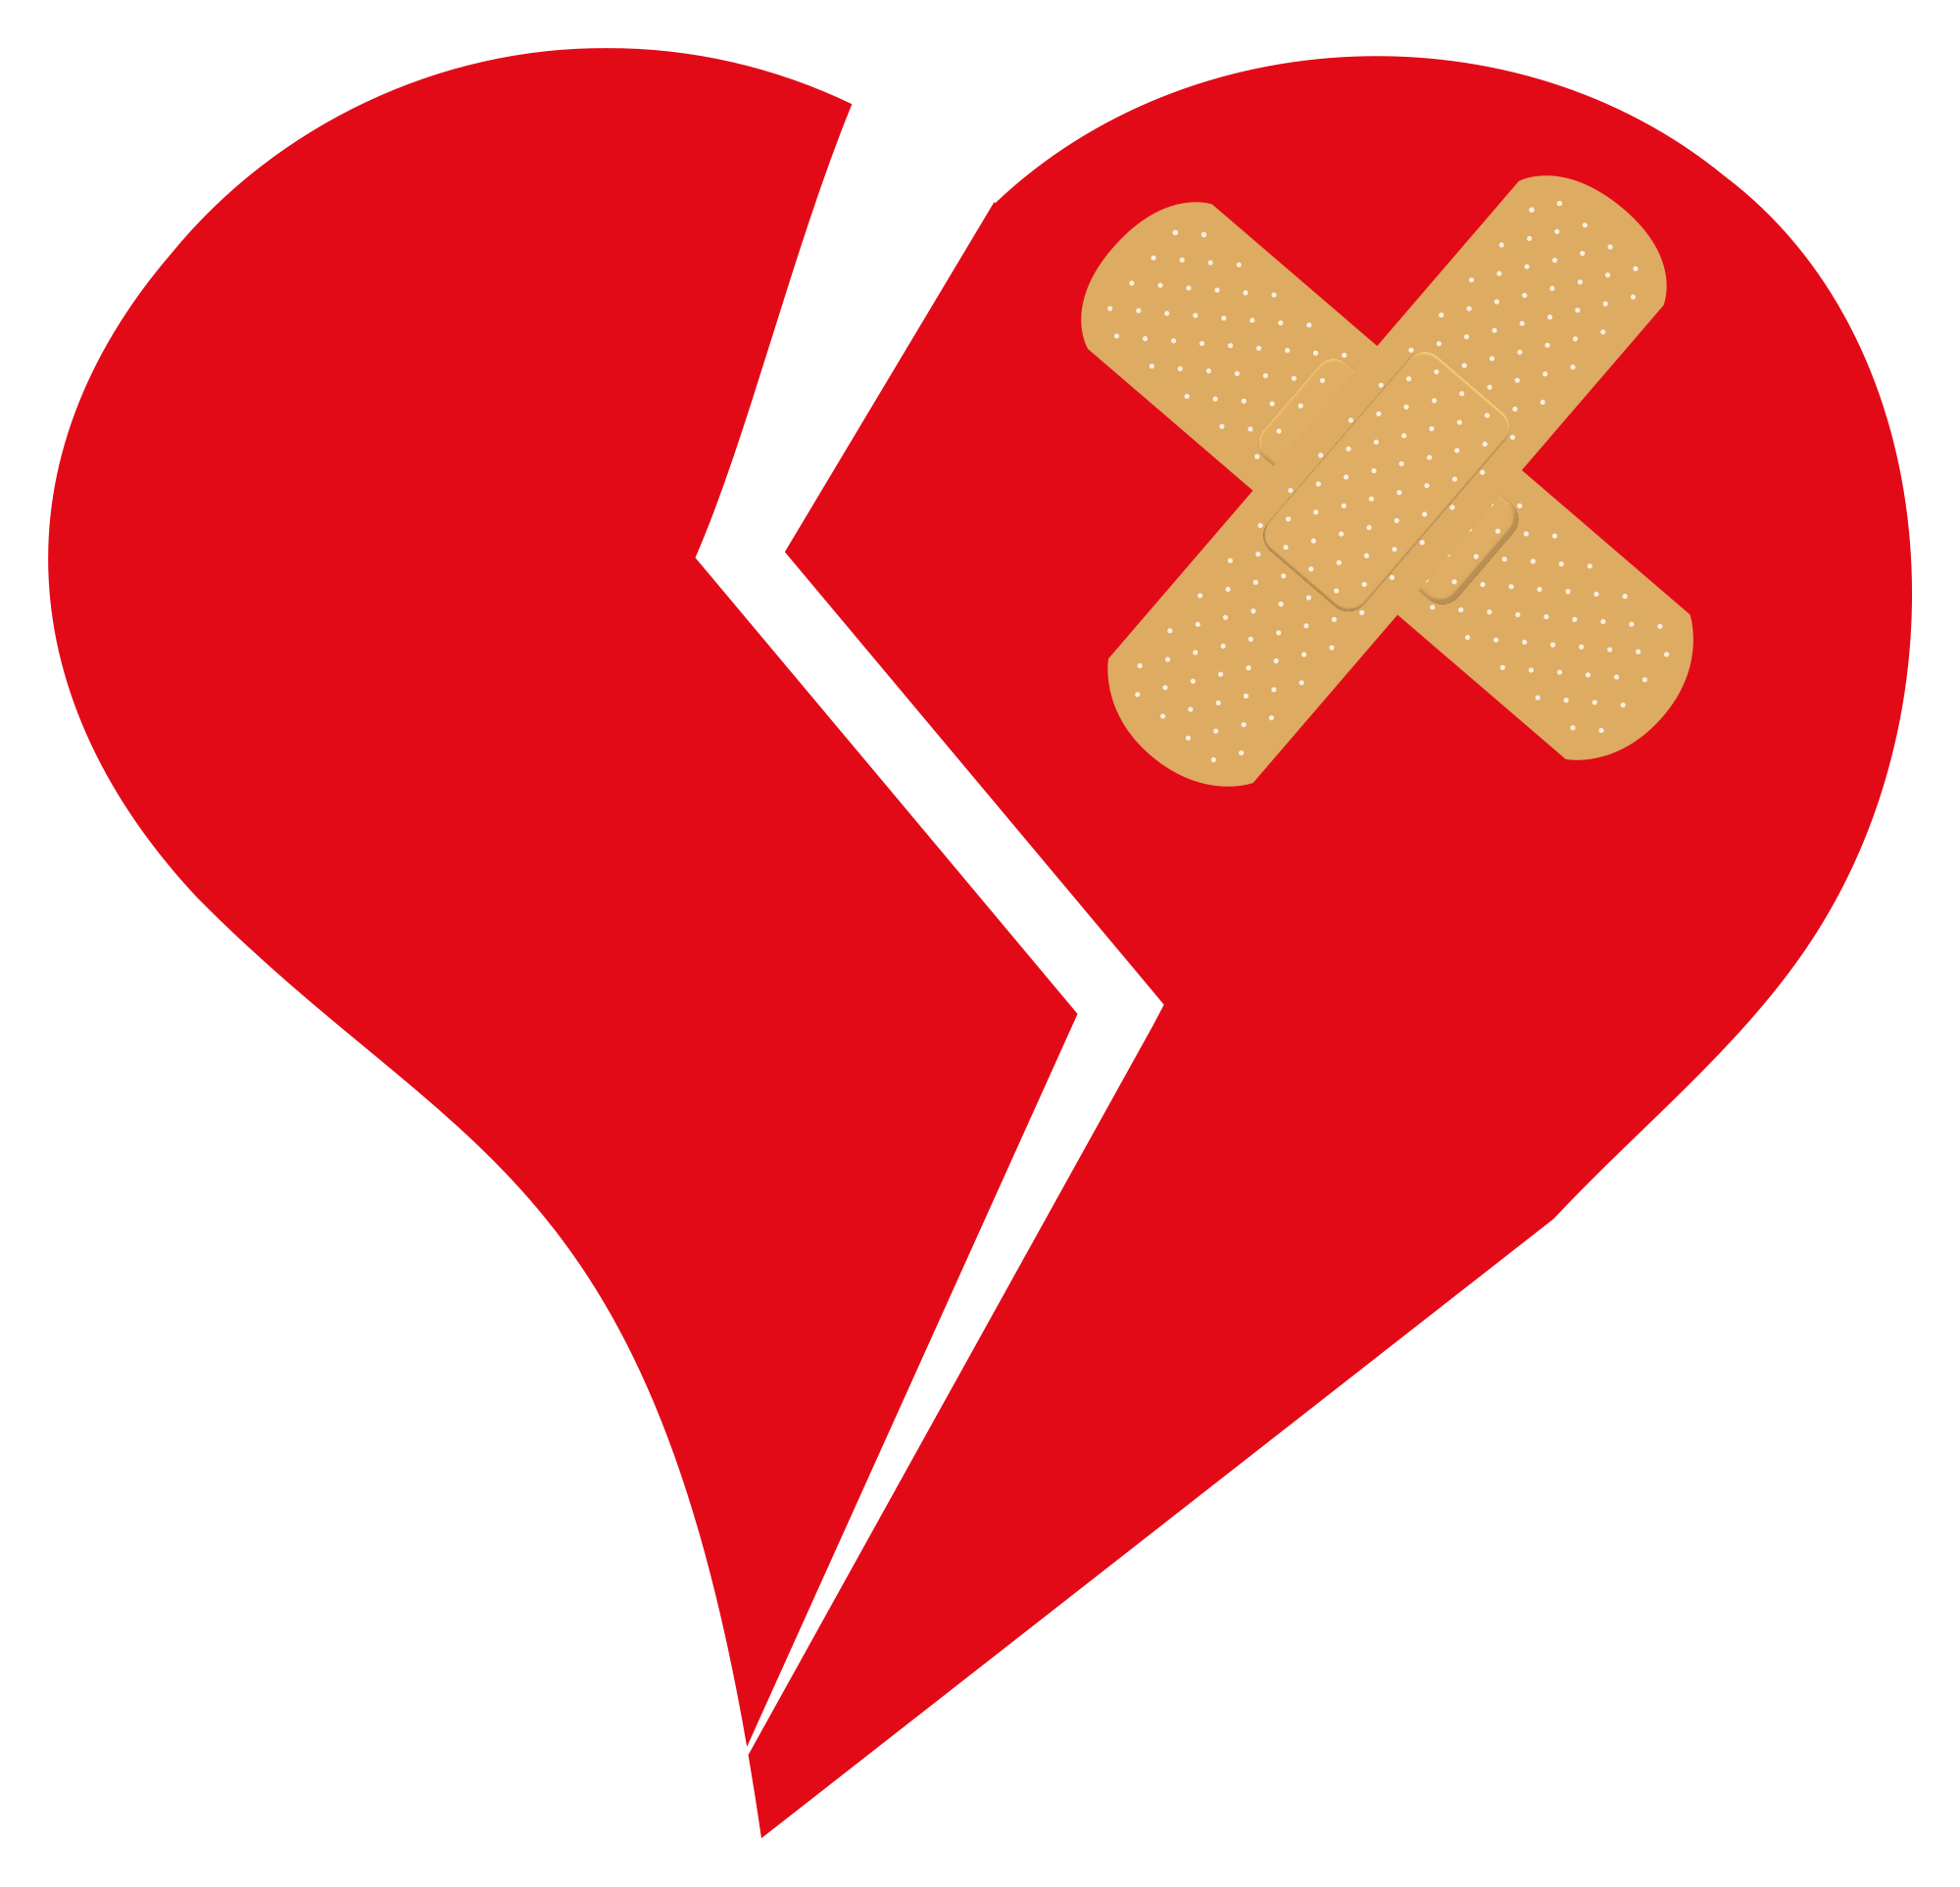 Clipart Love Heart Broken.